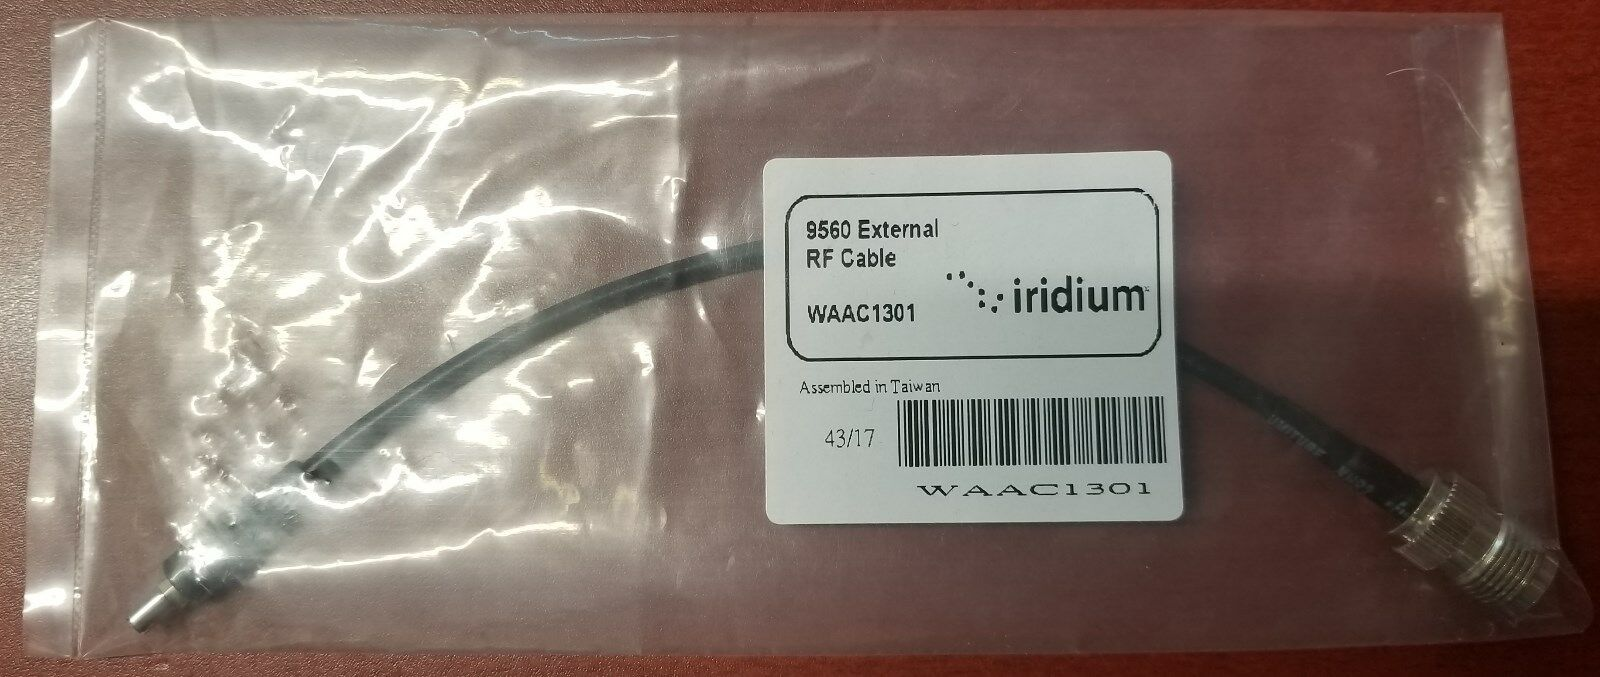 IRIDiUM GO   EXTERNAL RF CABLE   CONNECT TO ANTENNA (AIRPLANE OR MARITIME)